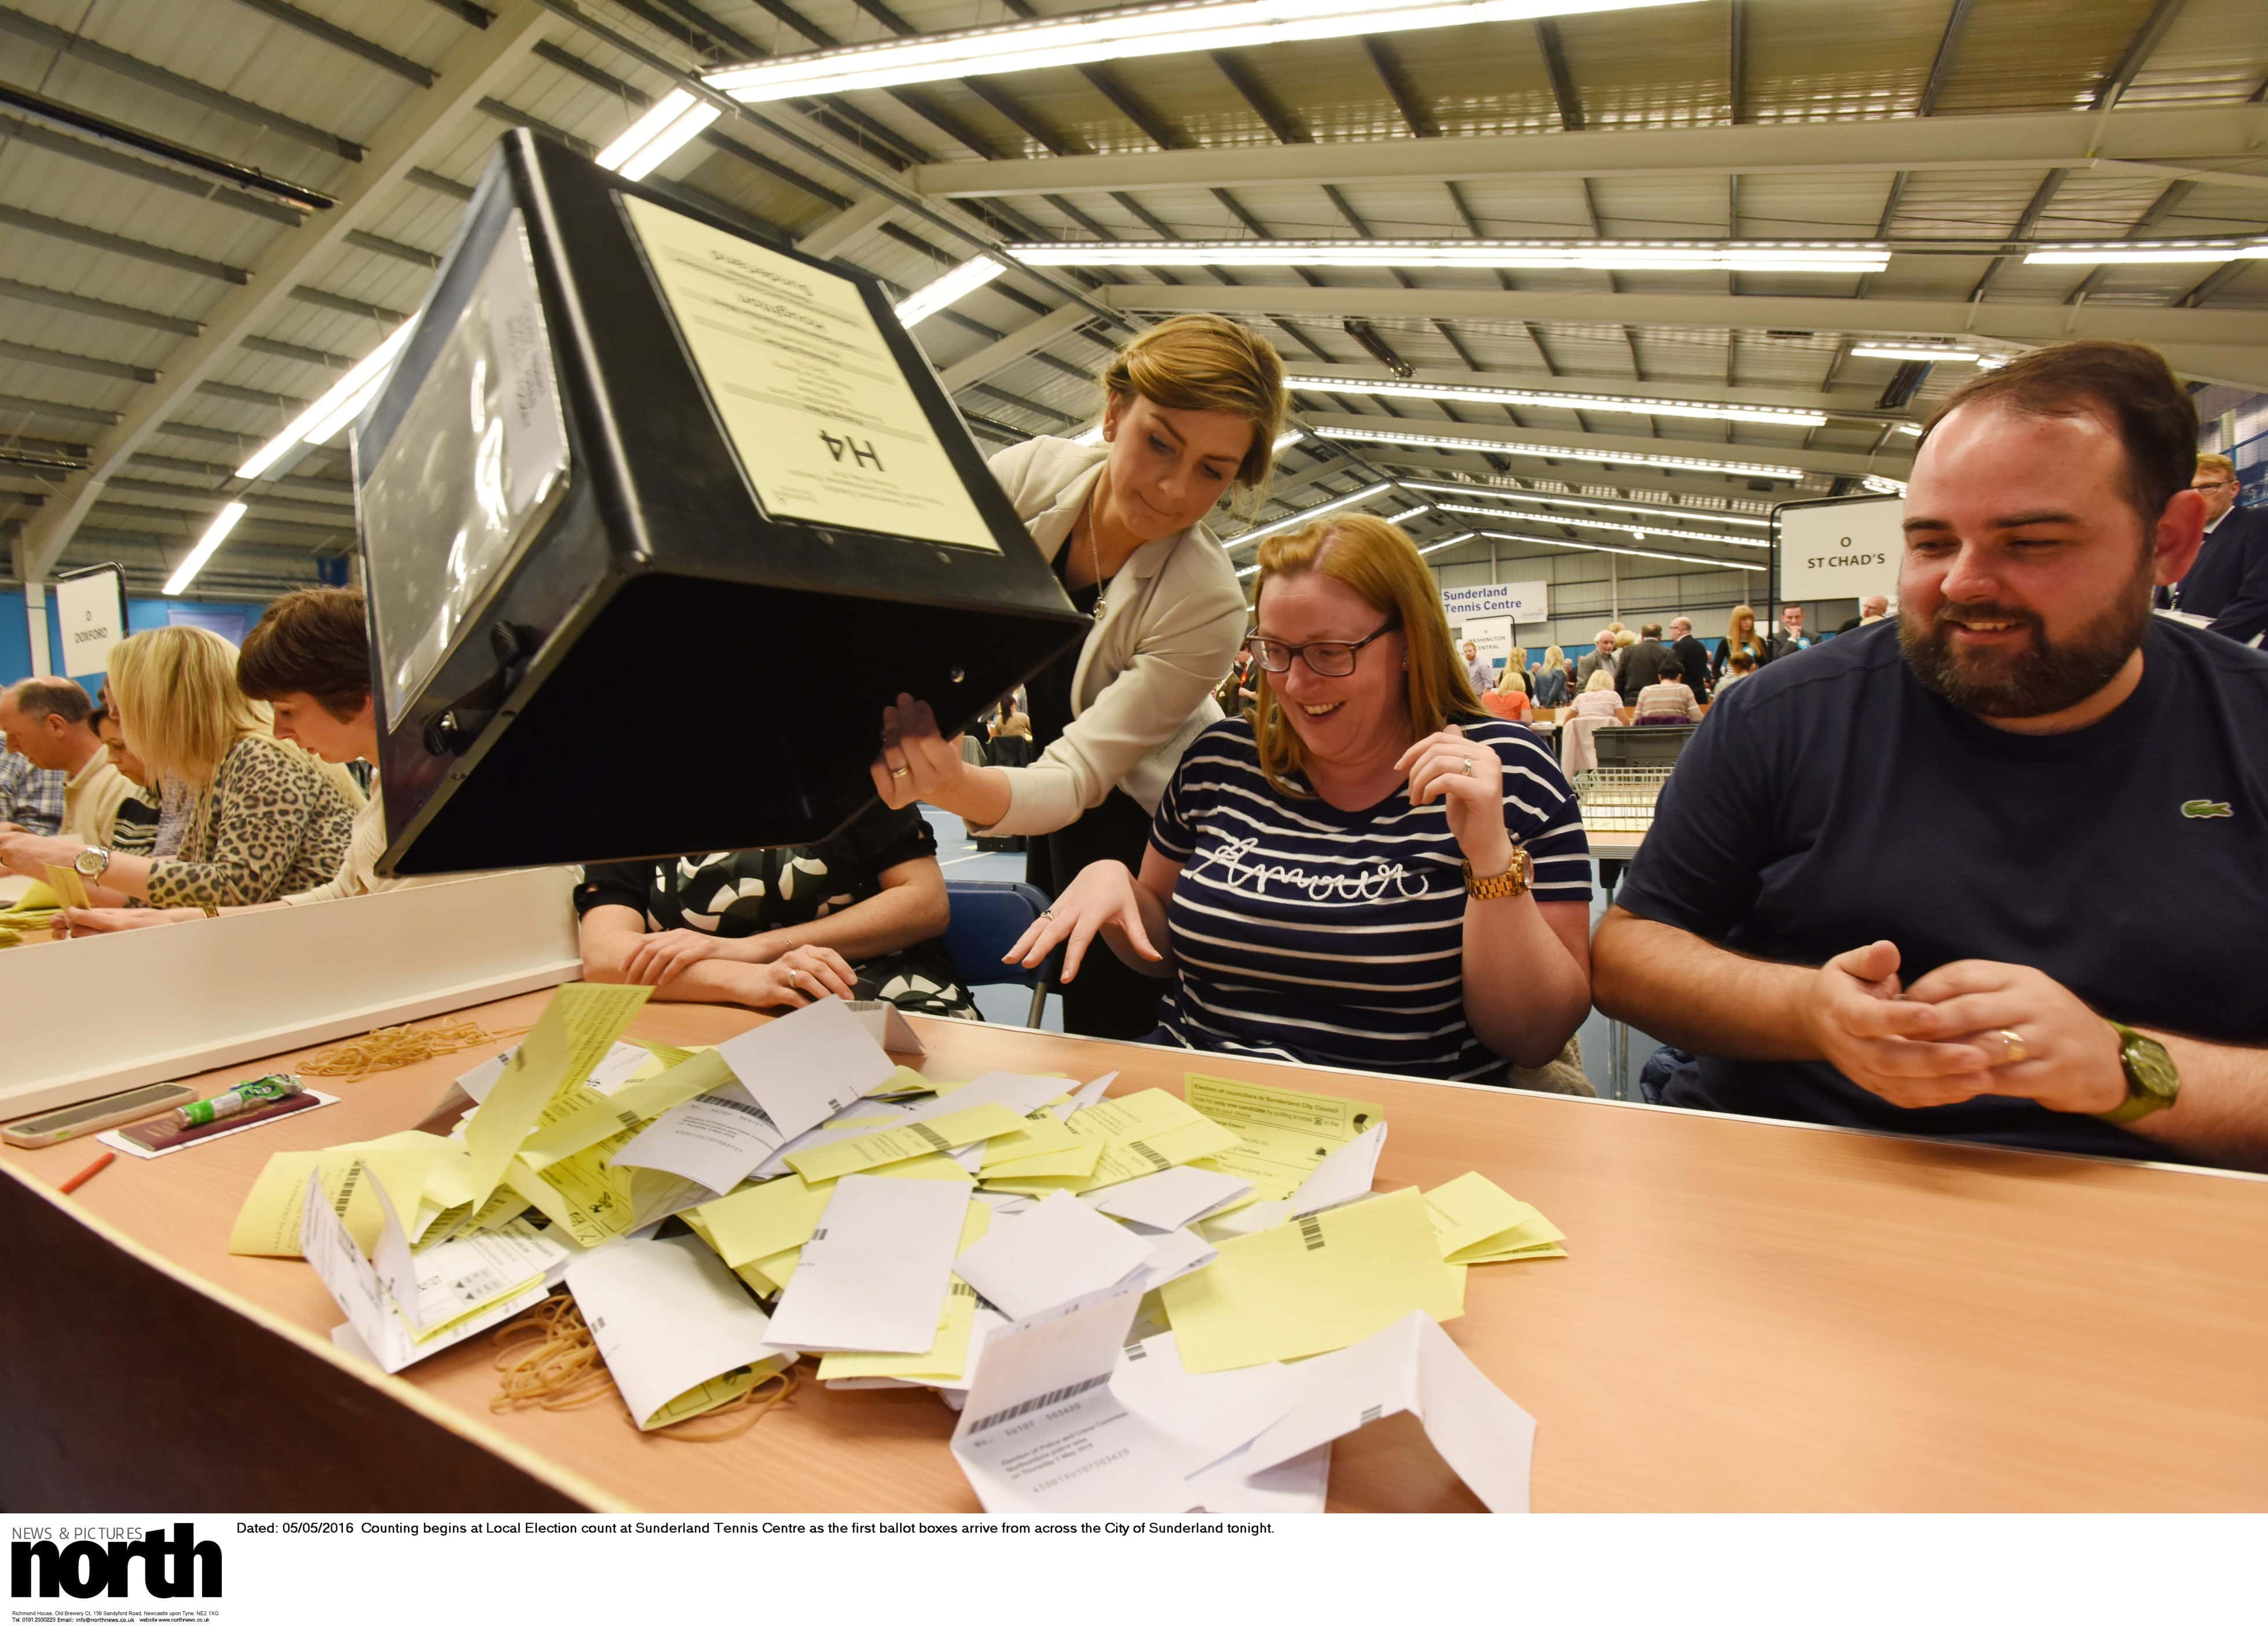 Dated: 05/05/2016  Counting begins at Local Election count at Sunderland Tennis Centre as the first ballot boxes arrive from across the City of Sunderland tonight.